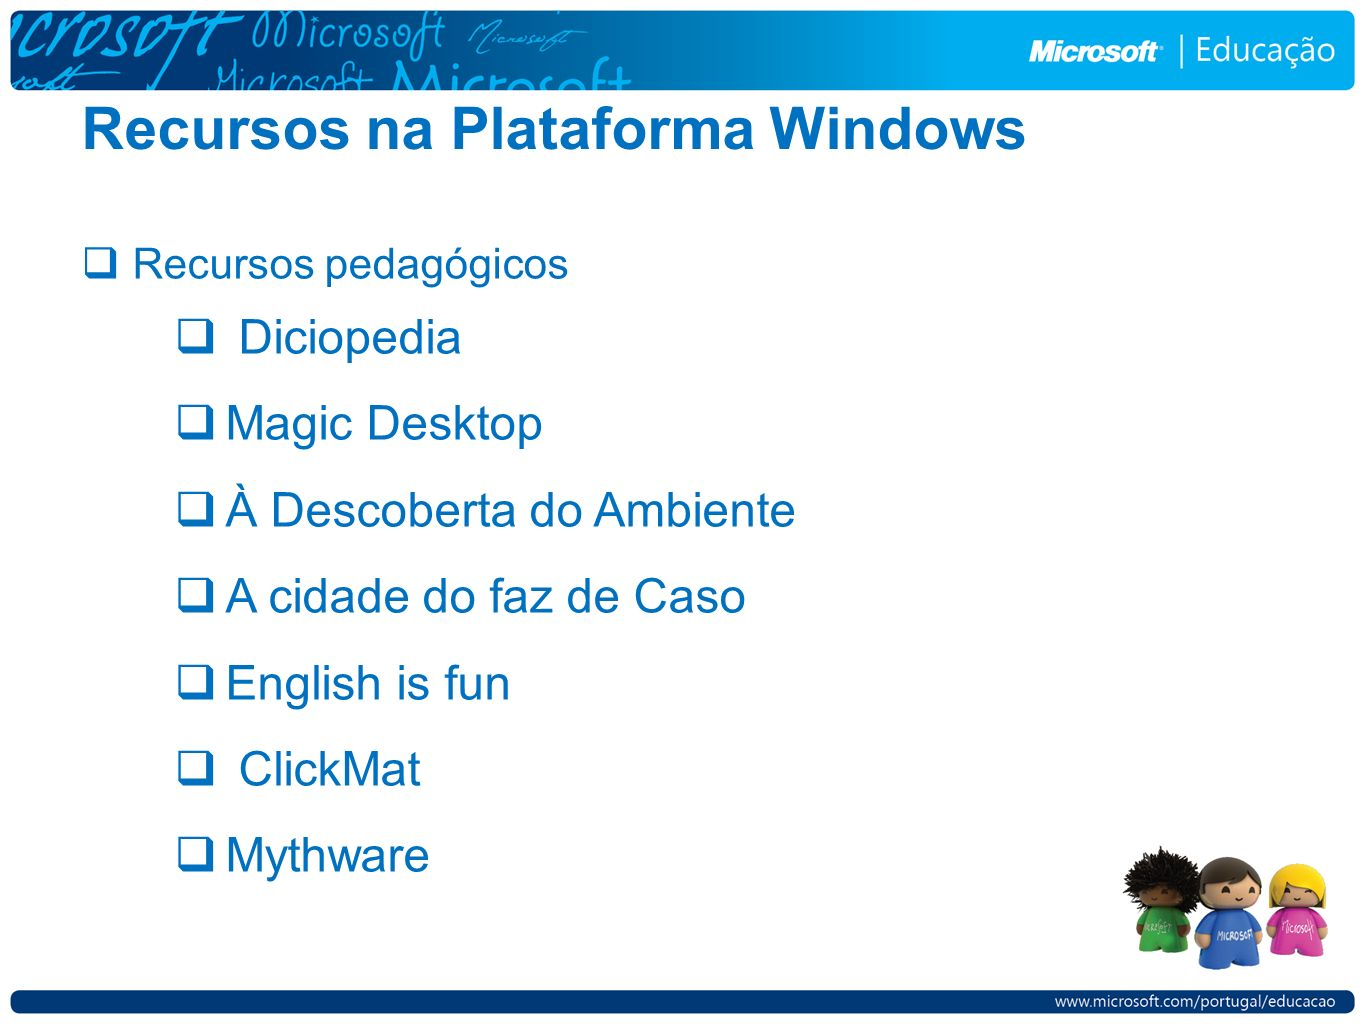 Recursos na Plataforma Windows